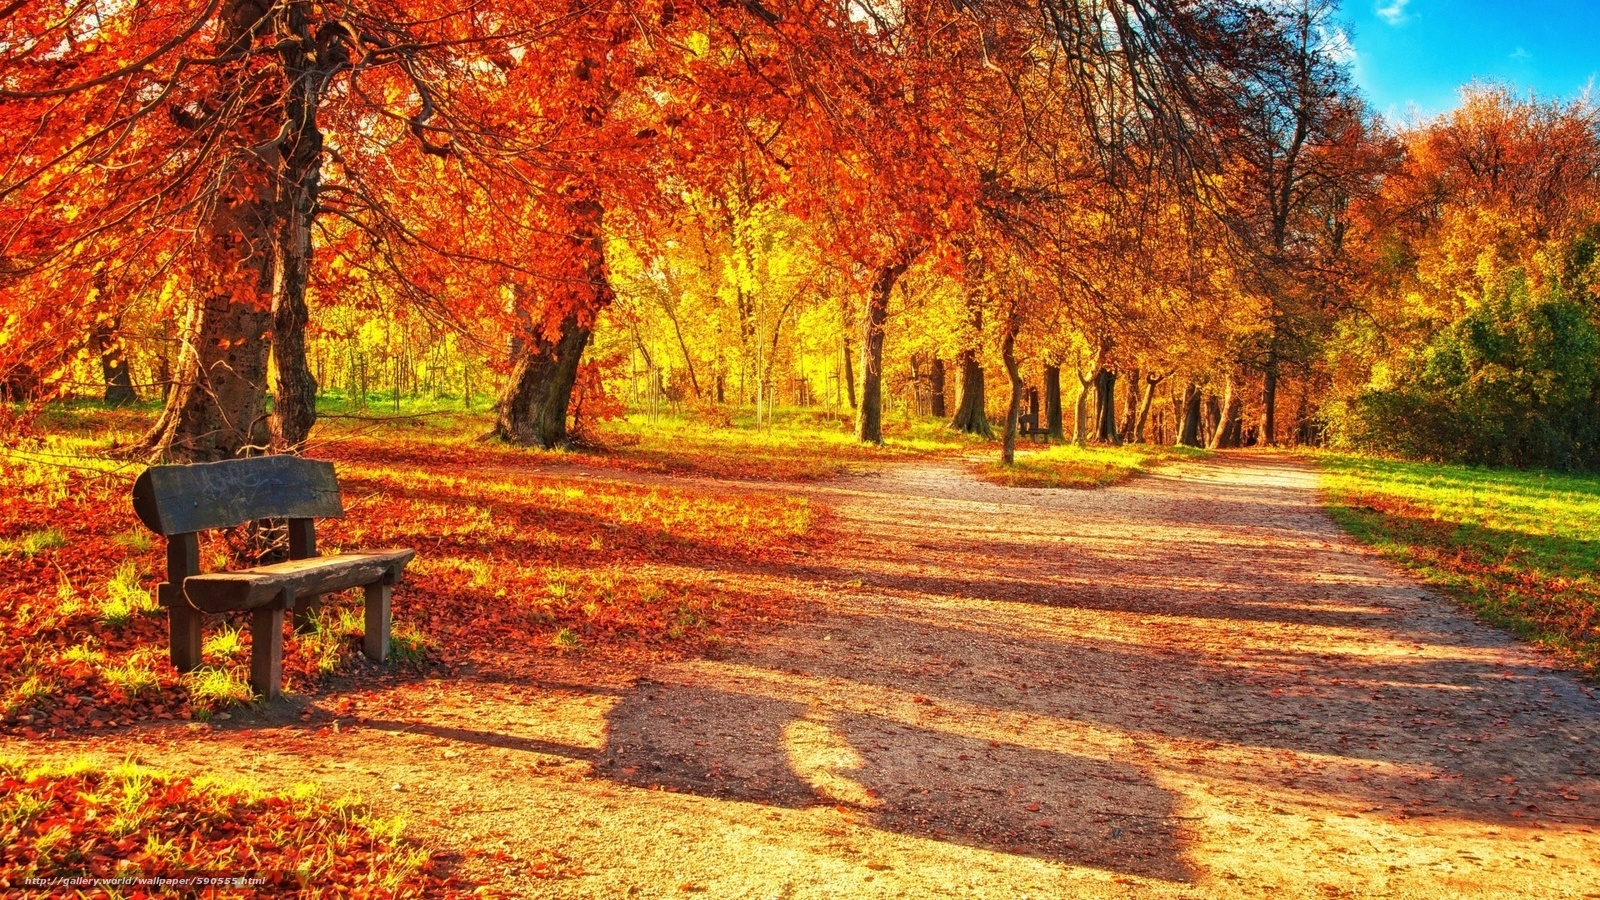 Wallpapers A Bench Trees Footpath Park №590555 / Section